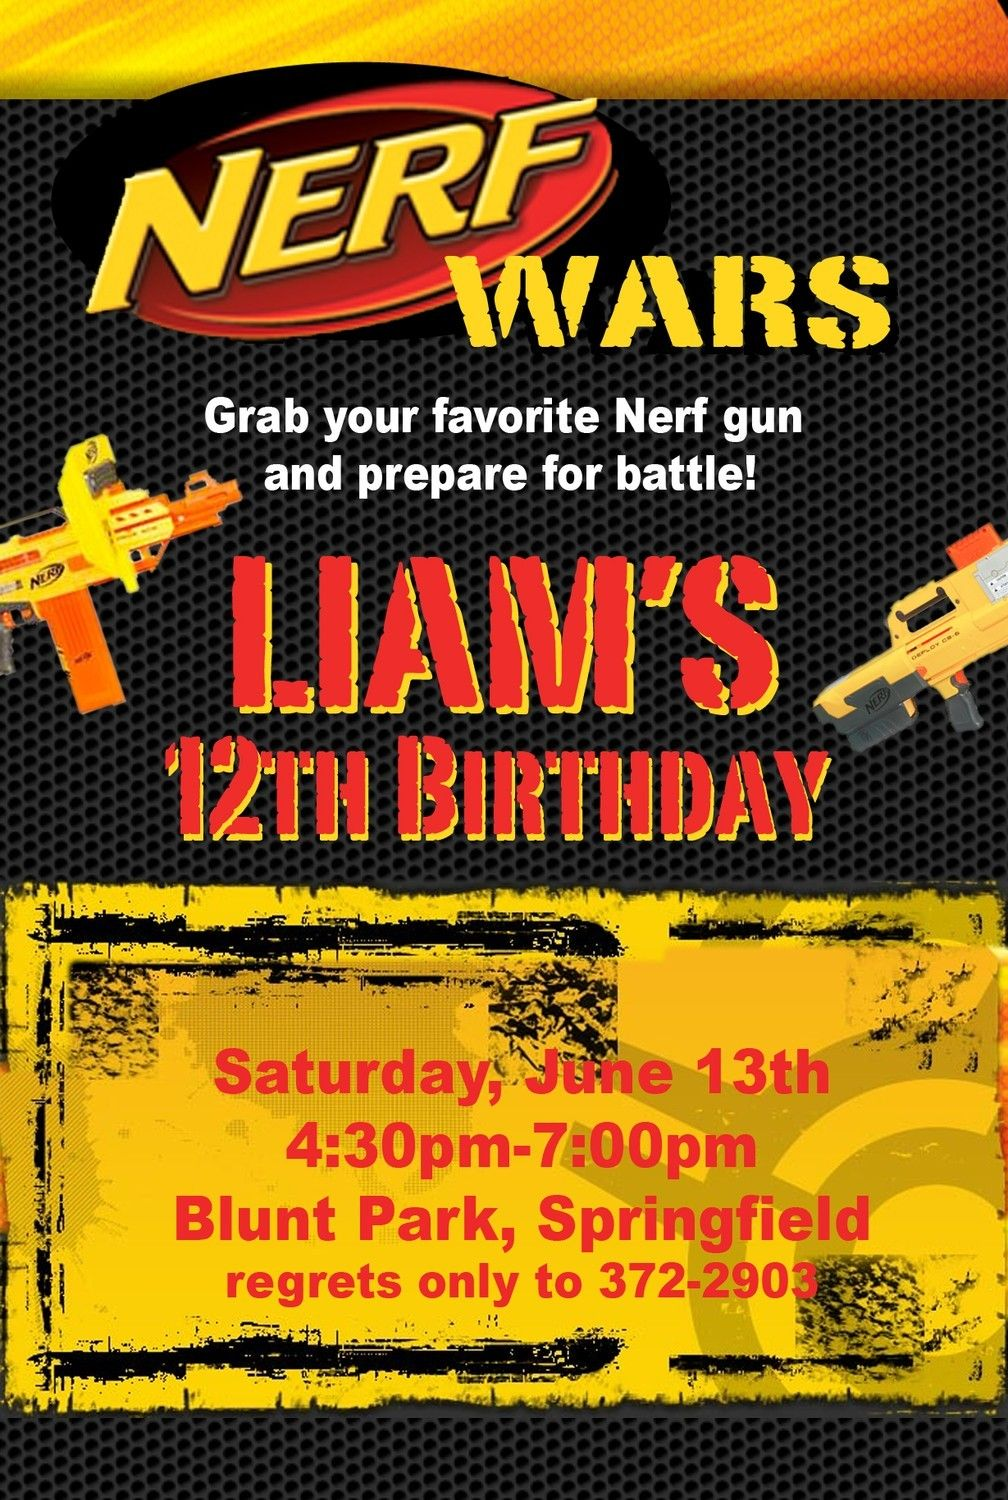 bday party invitation mail%0A Nerf War Birthday Party Invitation Idea